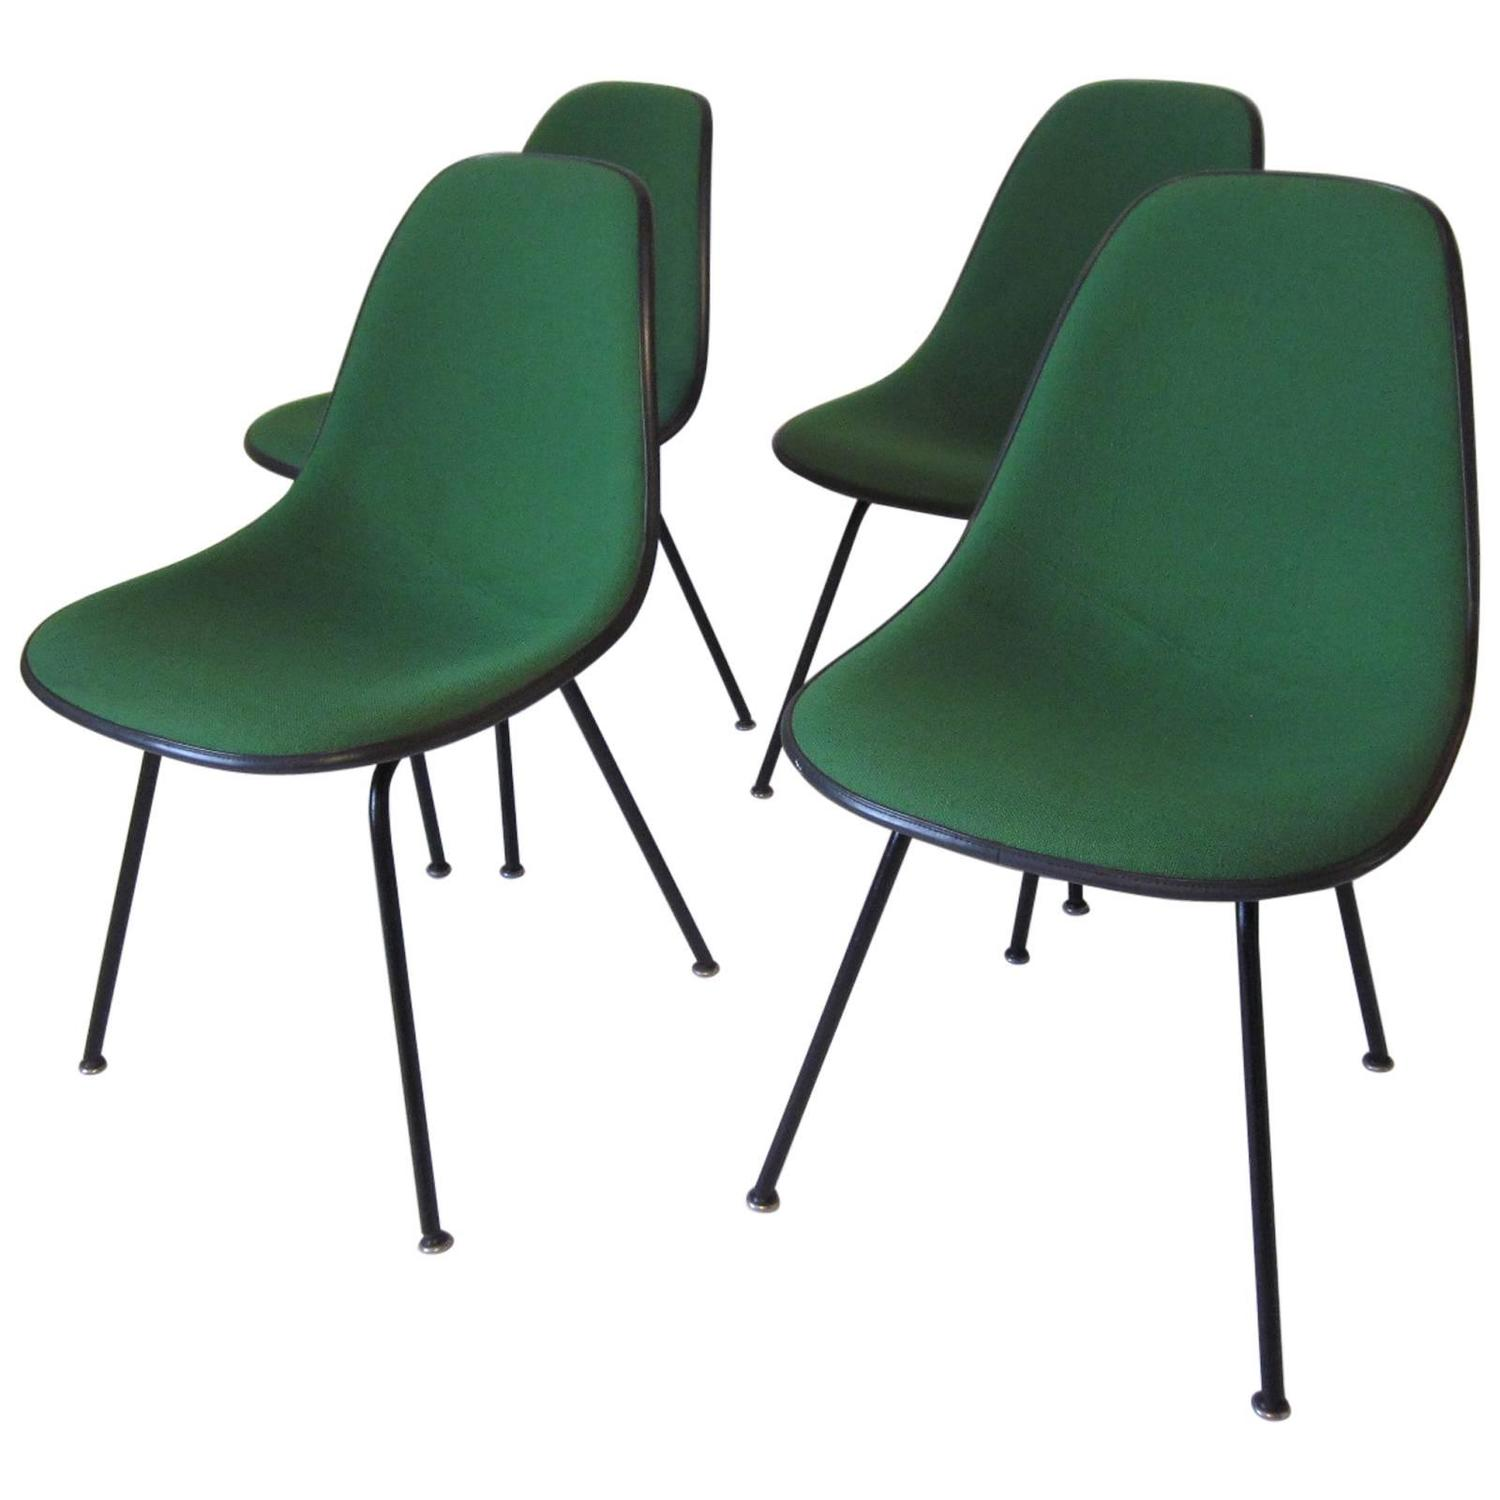 Eames Upholstered Dining Chairs at 1stdibs : 3827212z from www.1stdibs.com size 1500 x 1500 jpeg 87kB